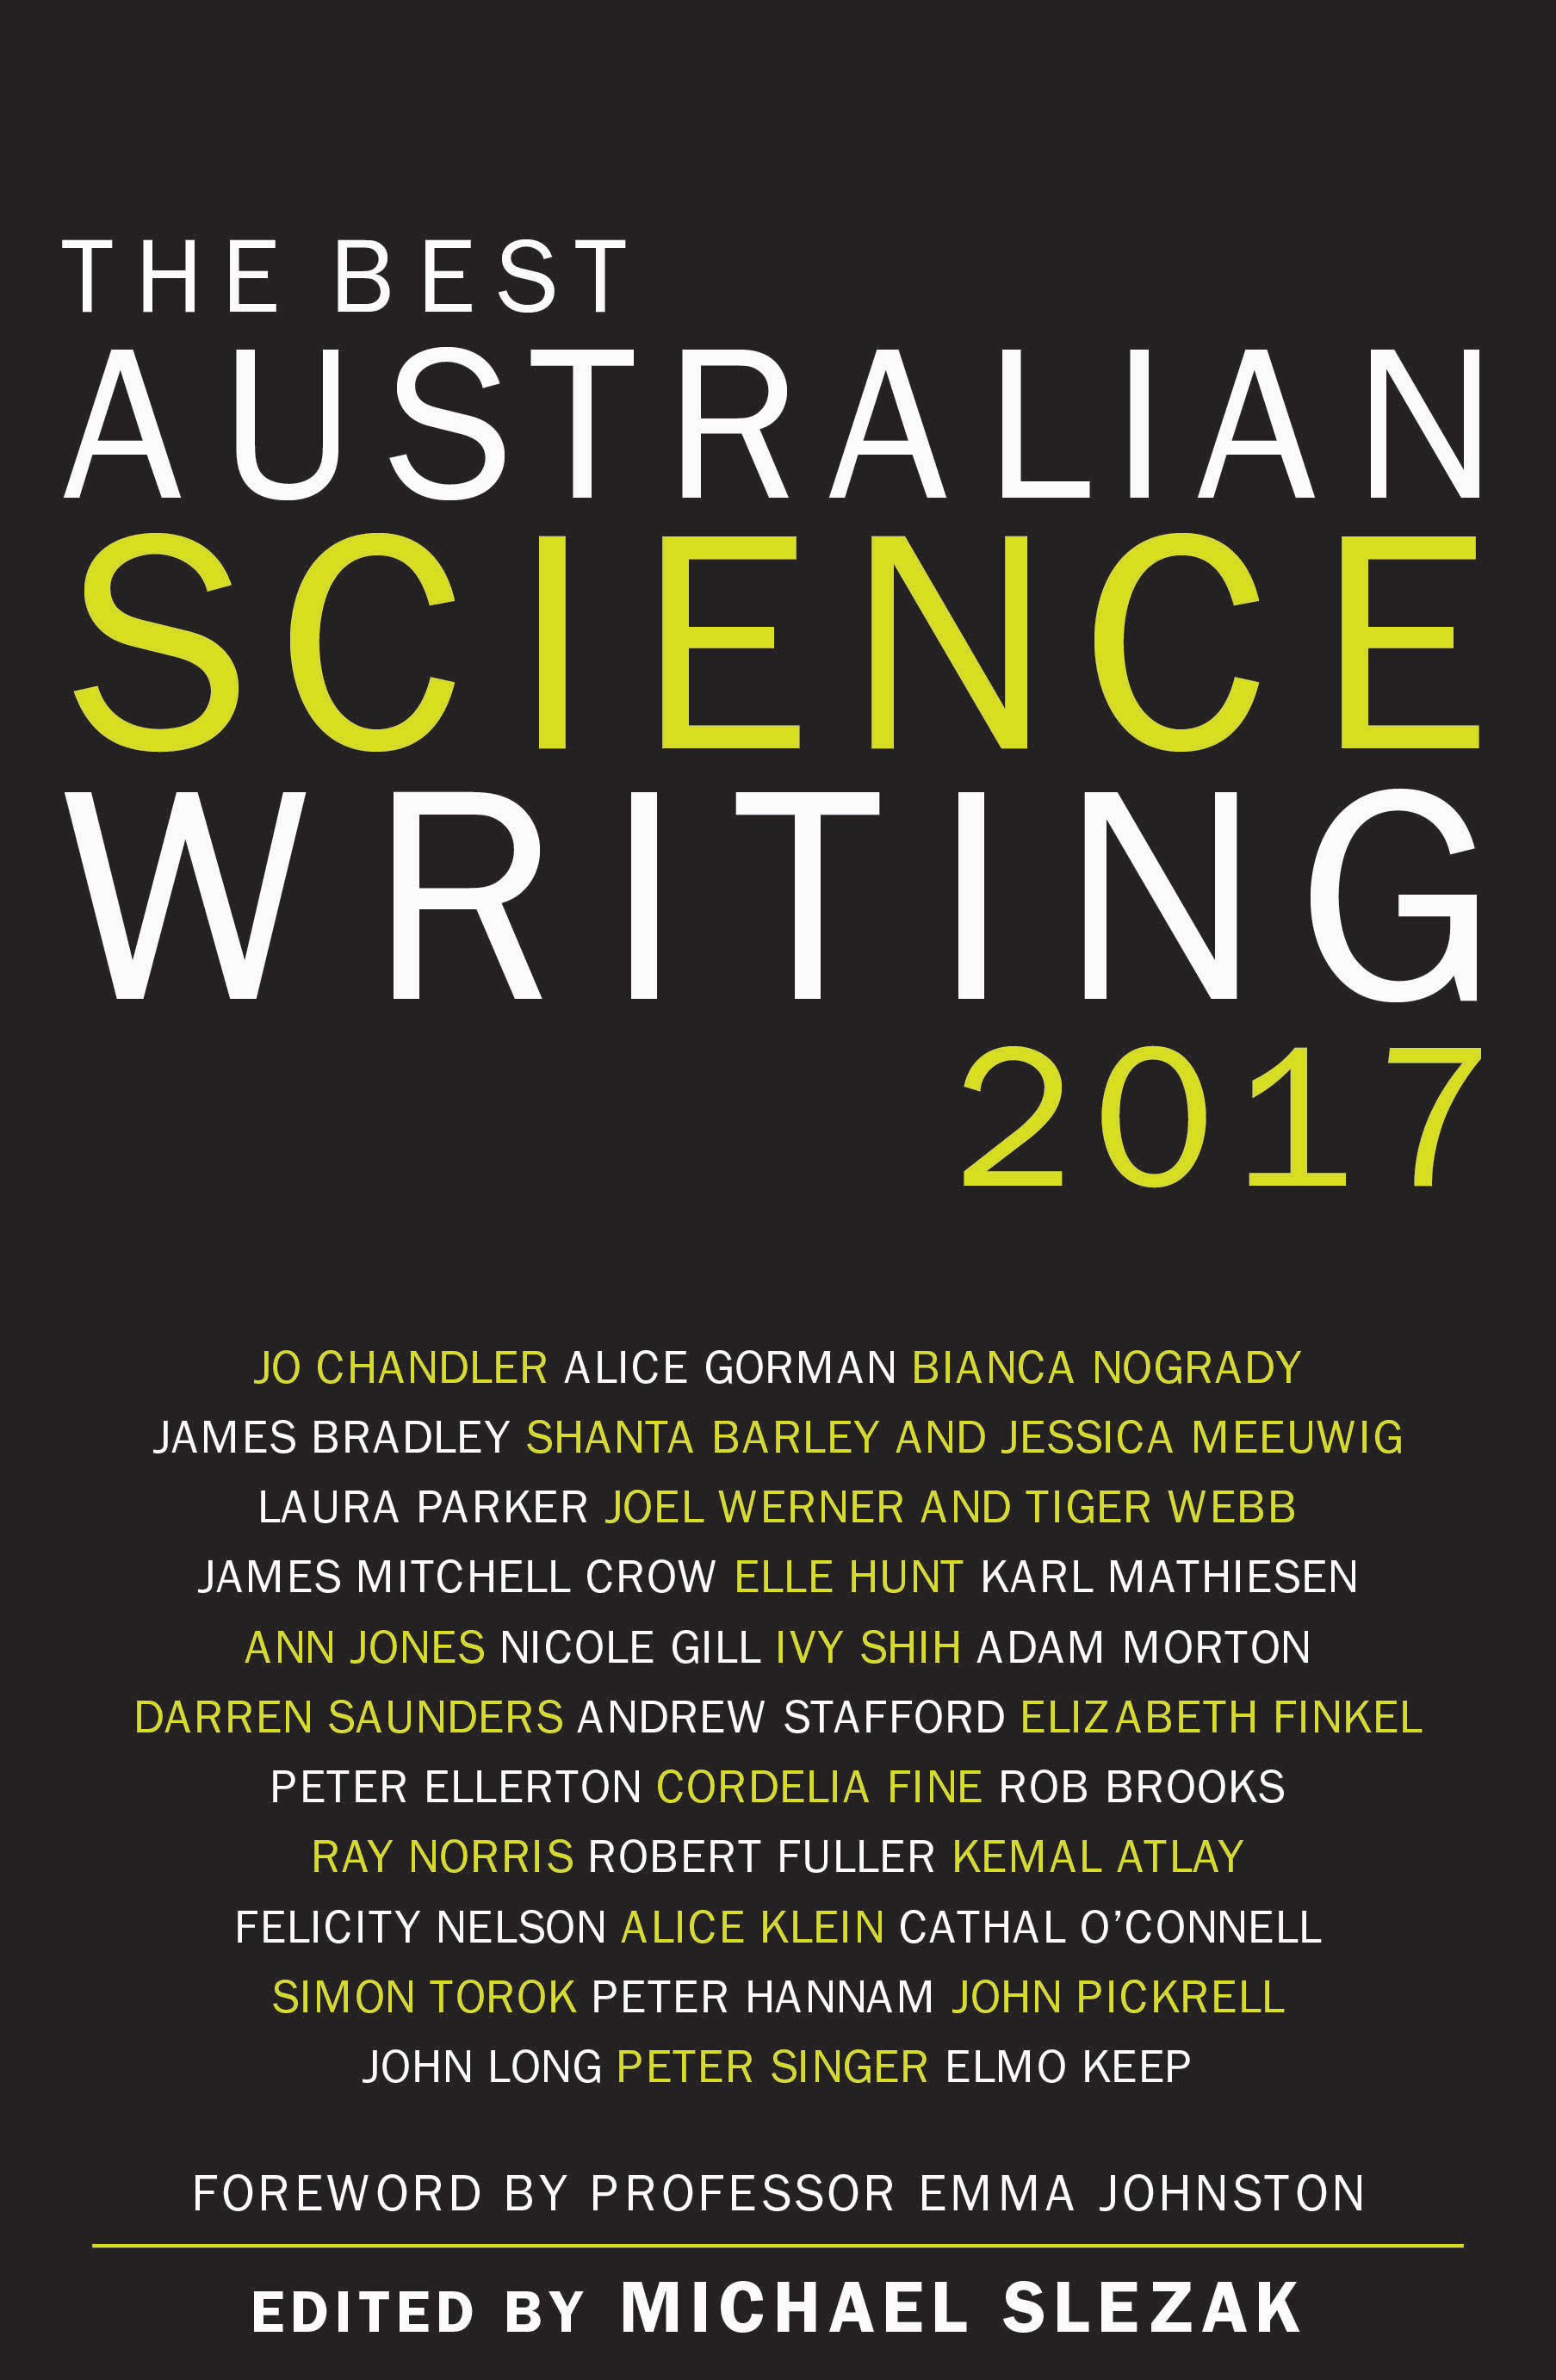 The Best Australian Science Writing 2017 by Michael Slezak (editor), ISBN: 9781742235554